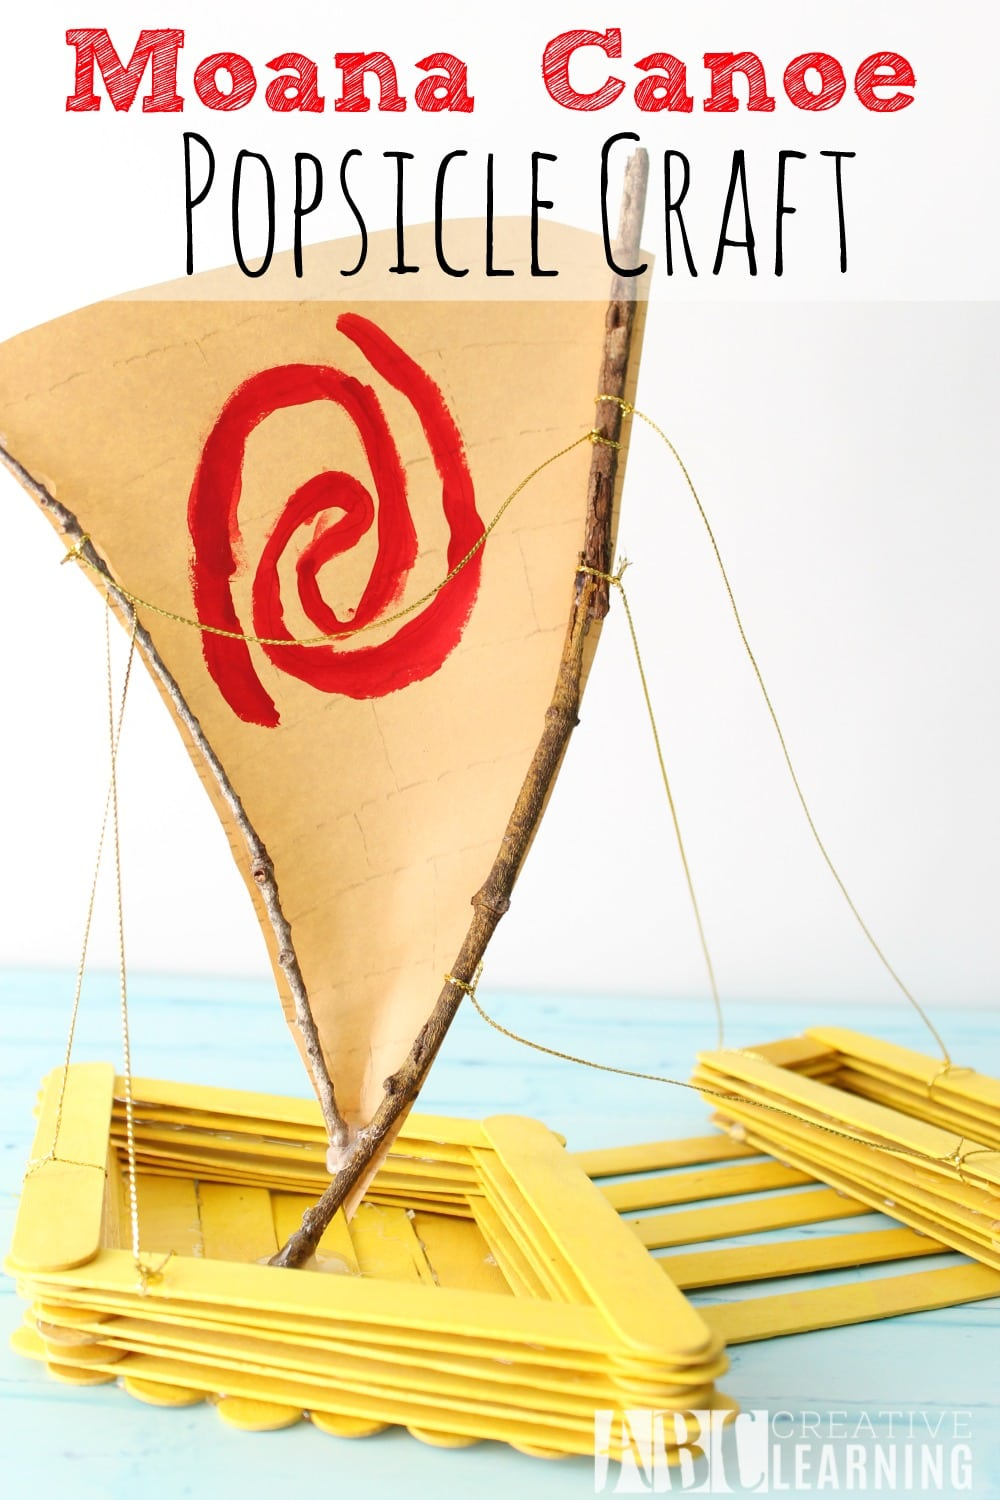 Moana Canoe Popsicle Craft Moana Abc Creative Learning